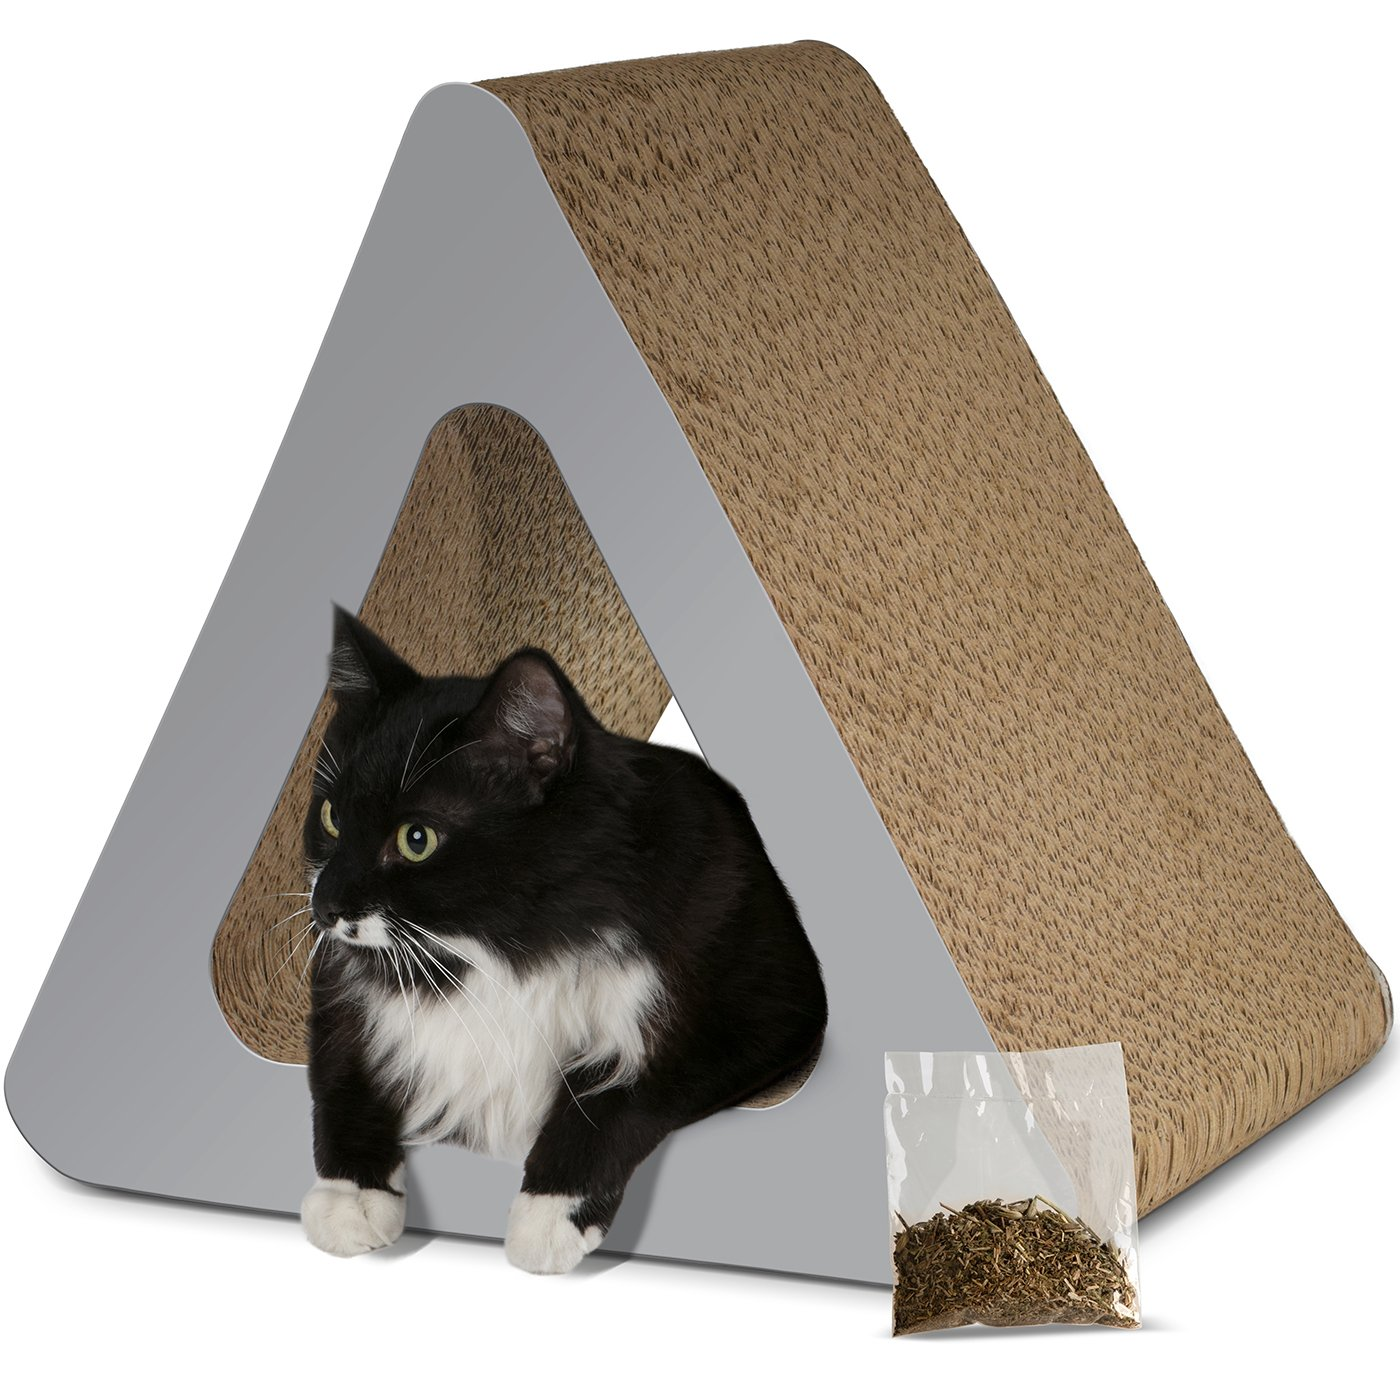 Paws & Pals 3-Sided Vertical Cat Scratcher Post - Different Cardboard Scratching Triangle Angles with Catnip - Gray